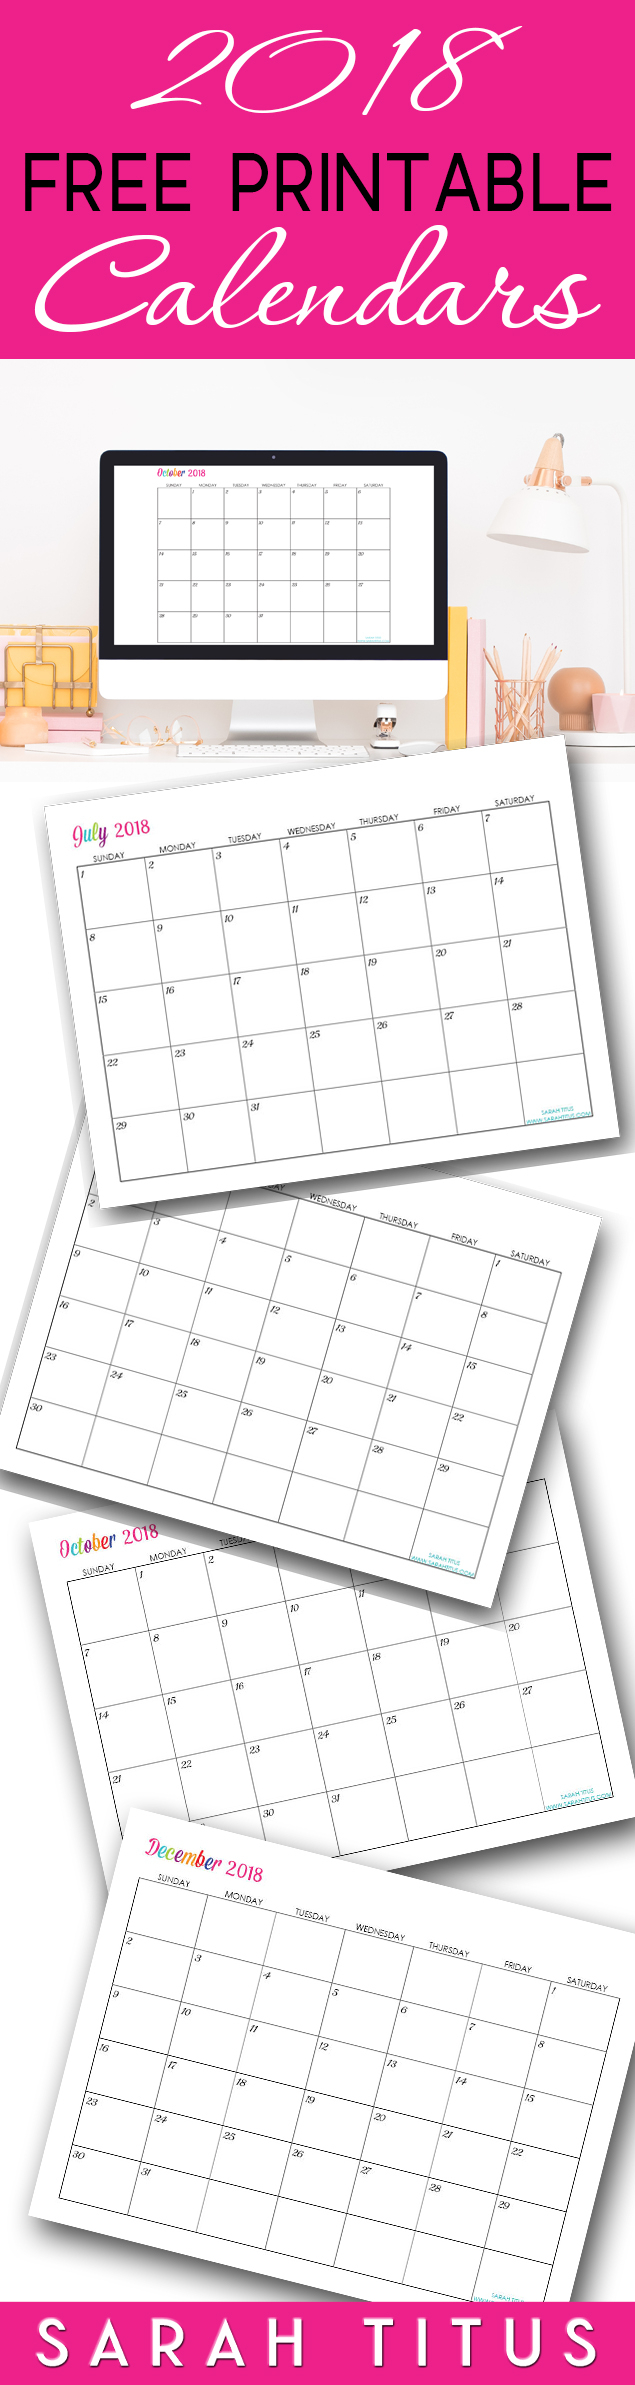 Custom Editable Free Printable 2018 Calendars  Sarah Titus intended for Sarah Titus Calendar